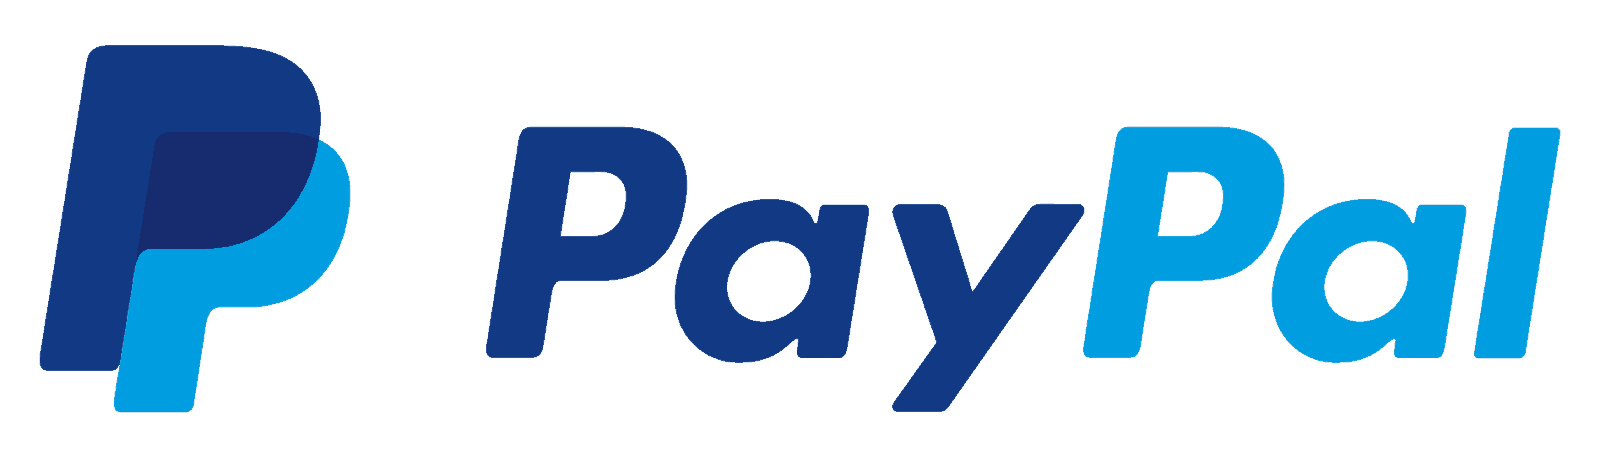 PayPal Debit business bank account